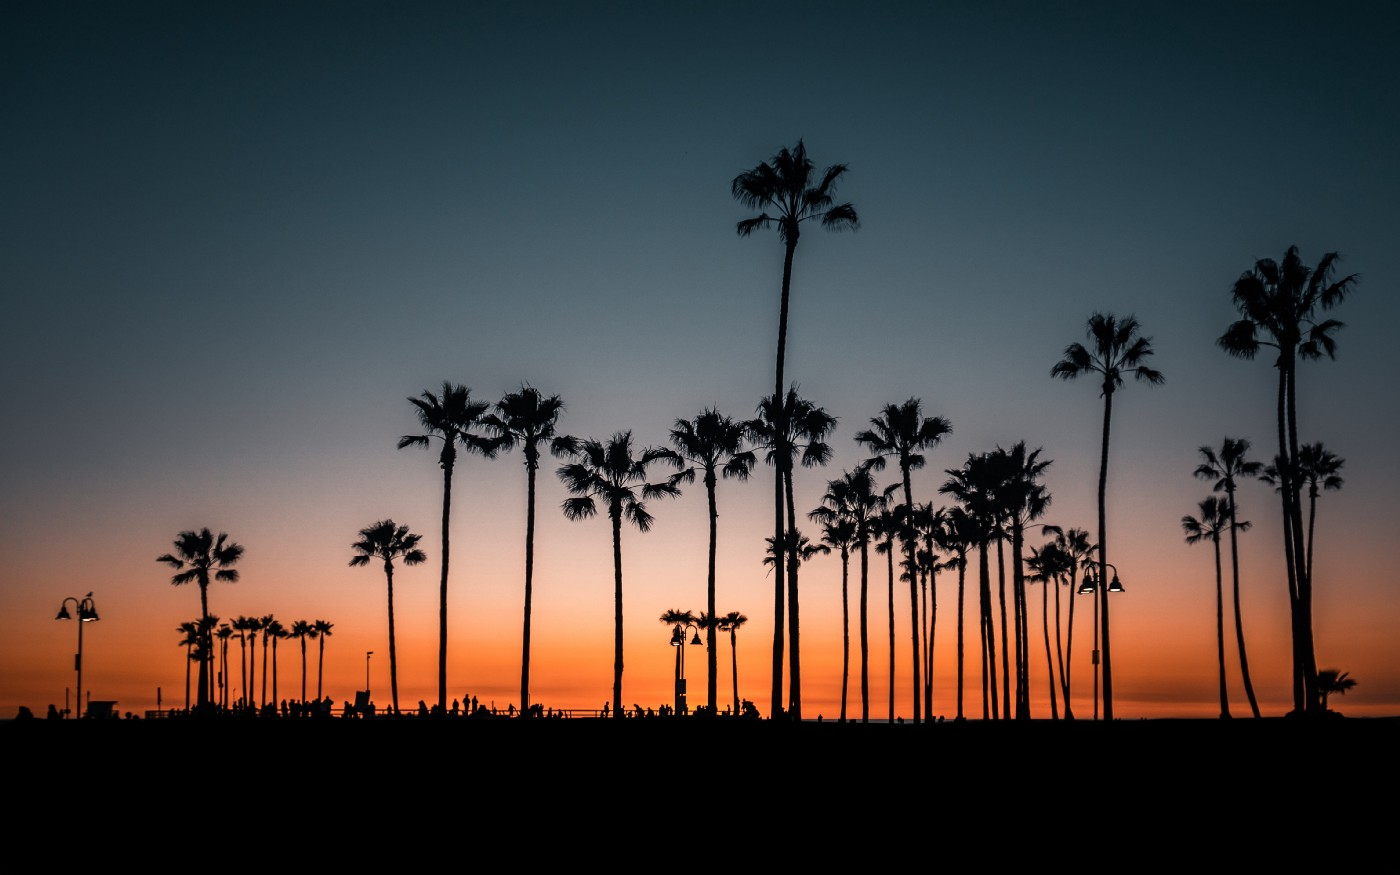 California sunset with palm trees. The colors in the sunset are orange blue and pink. The palm trees line the skyline.